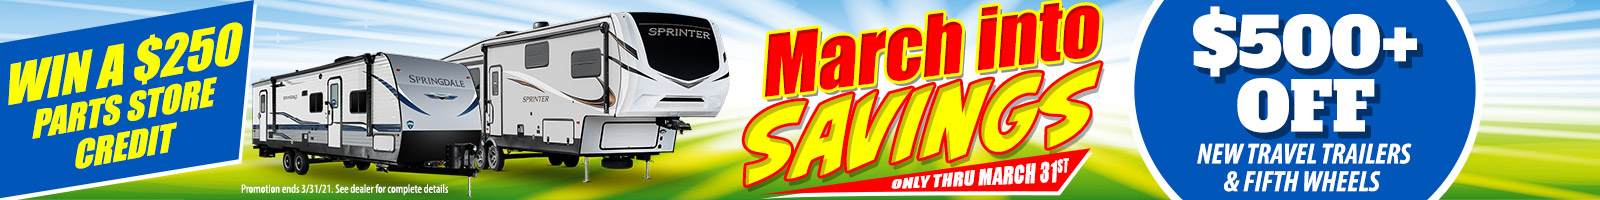 March Into Savings